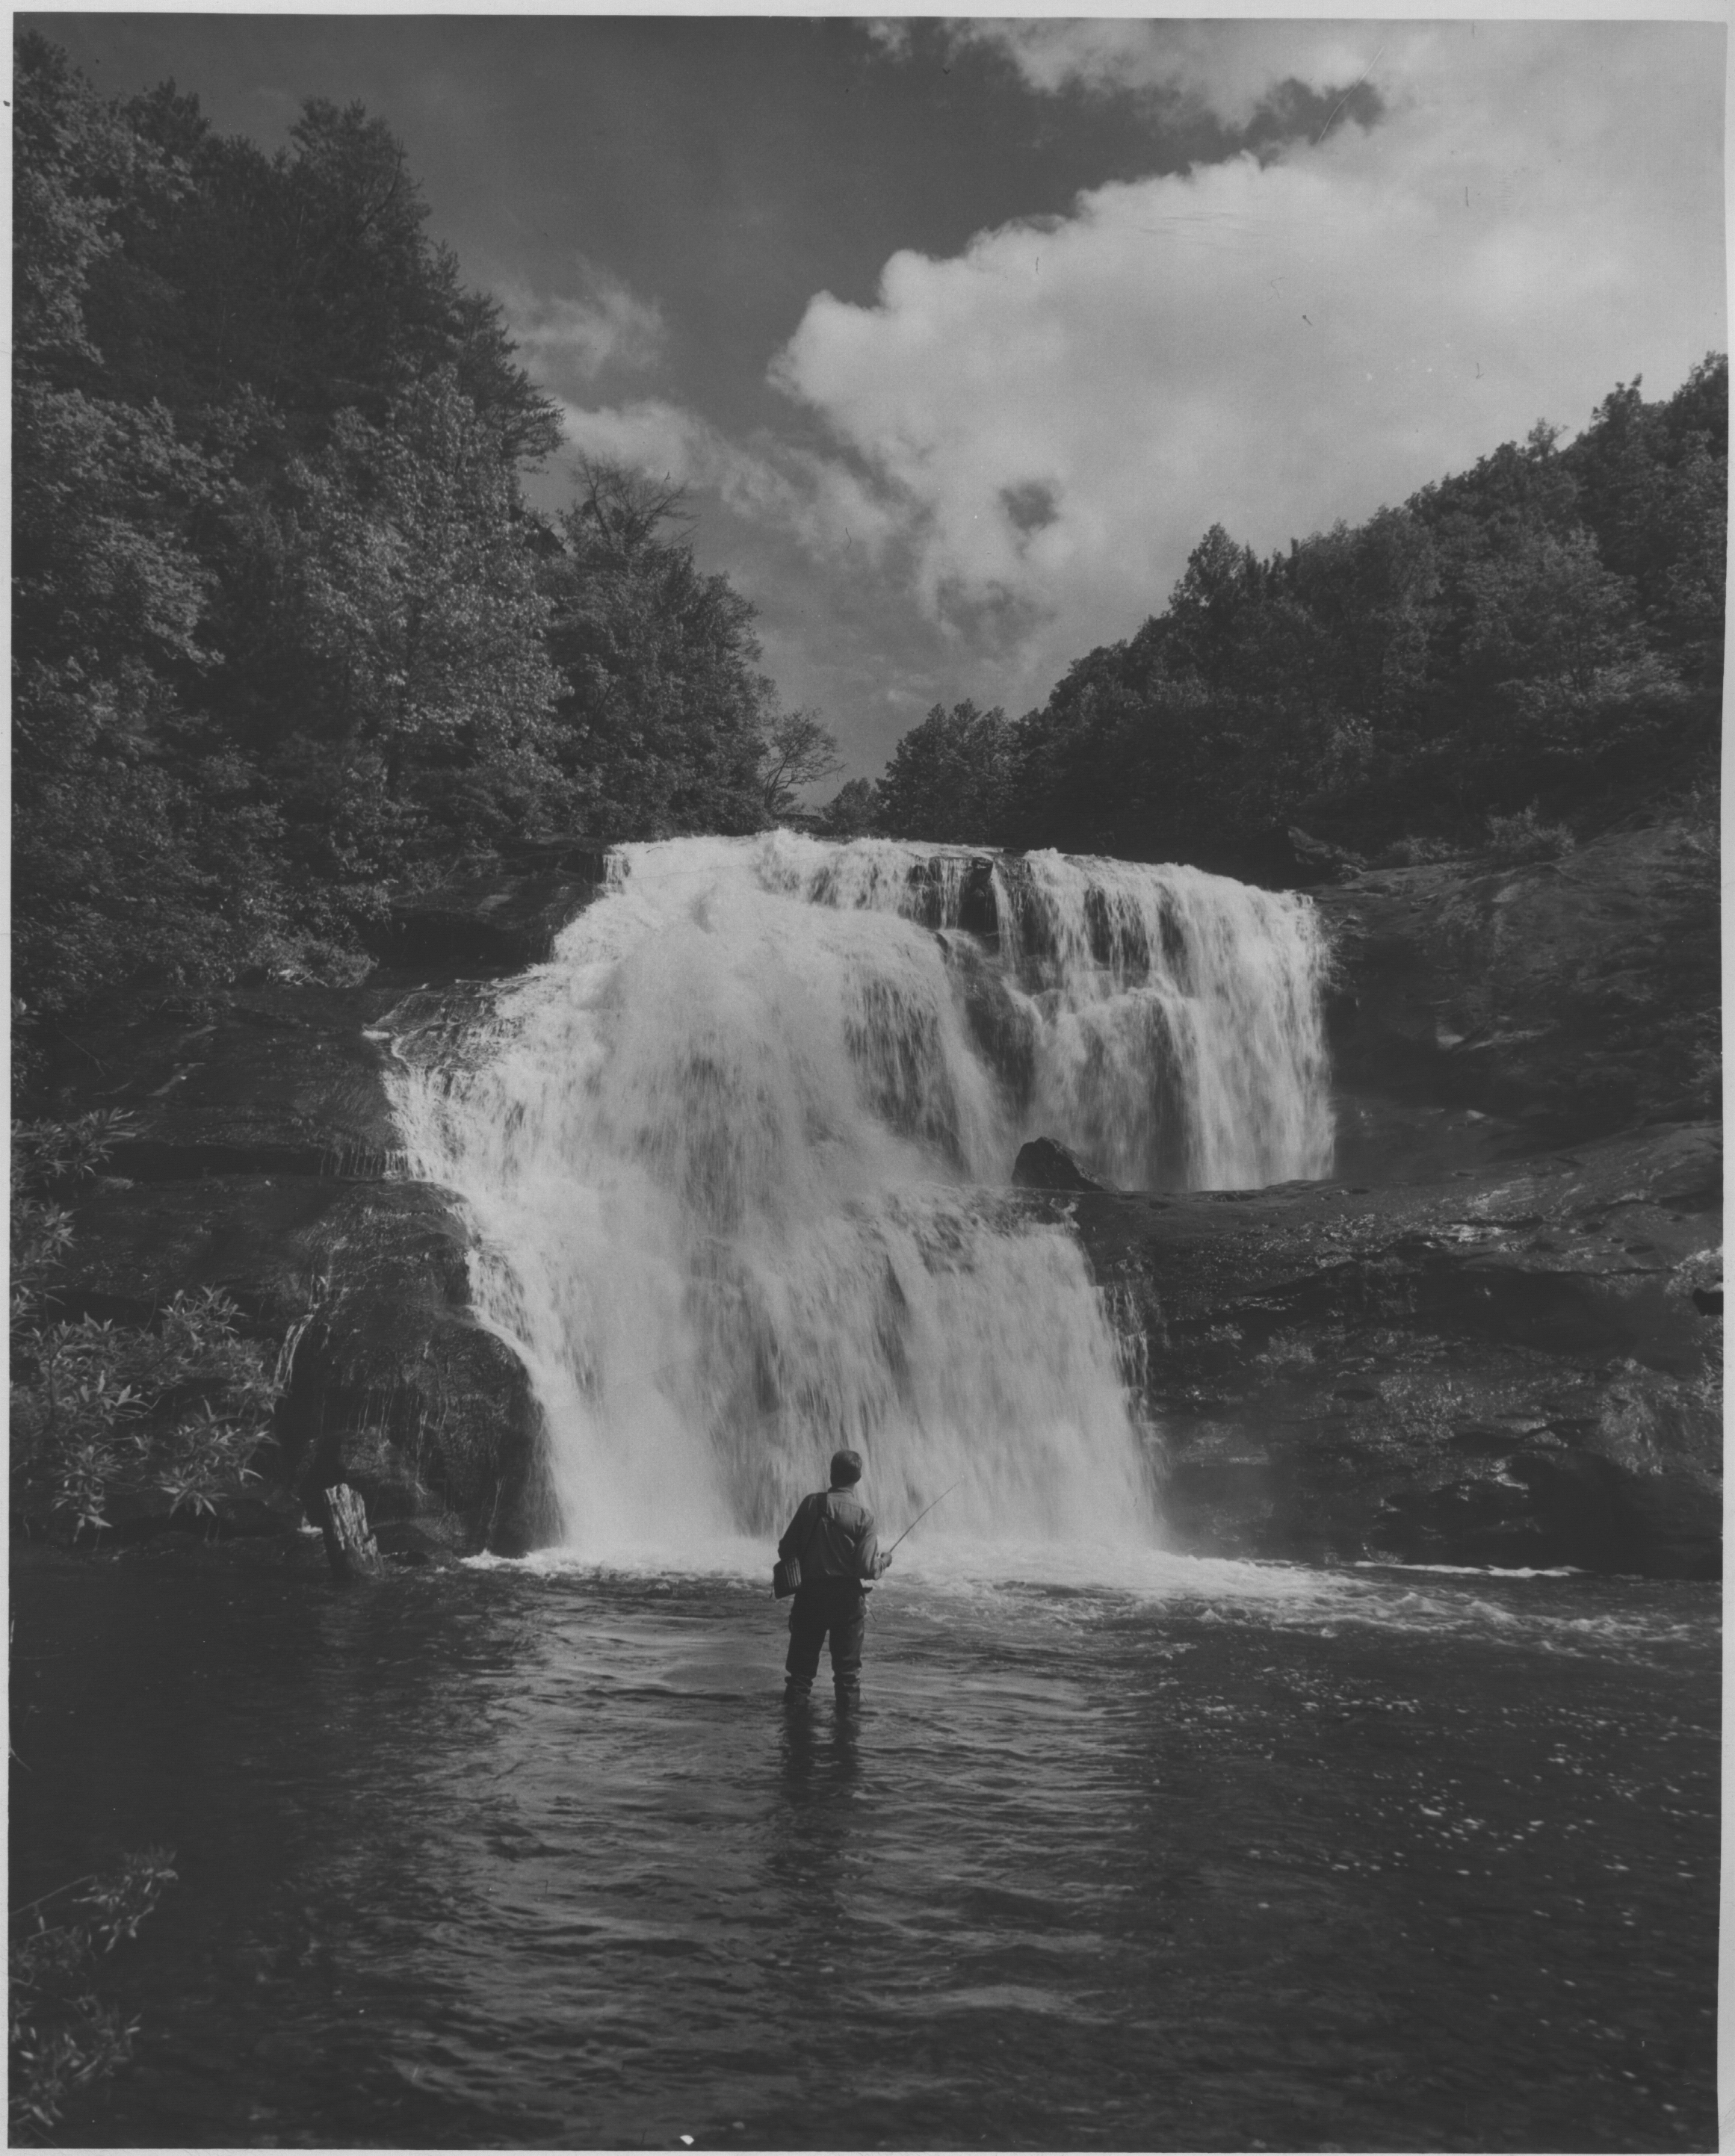 A fisherman at Bald River Falls in the Cherokee National Forest. (1947)